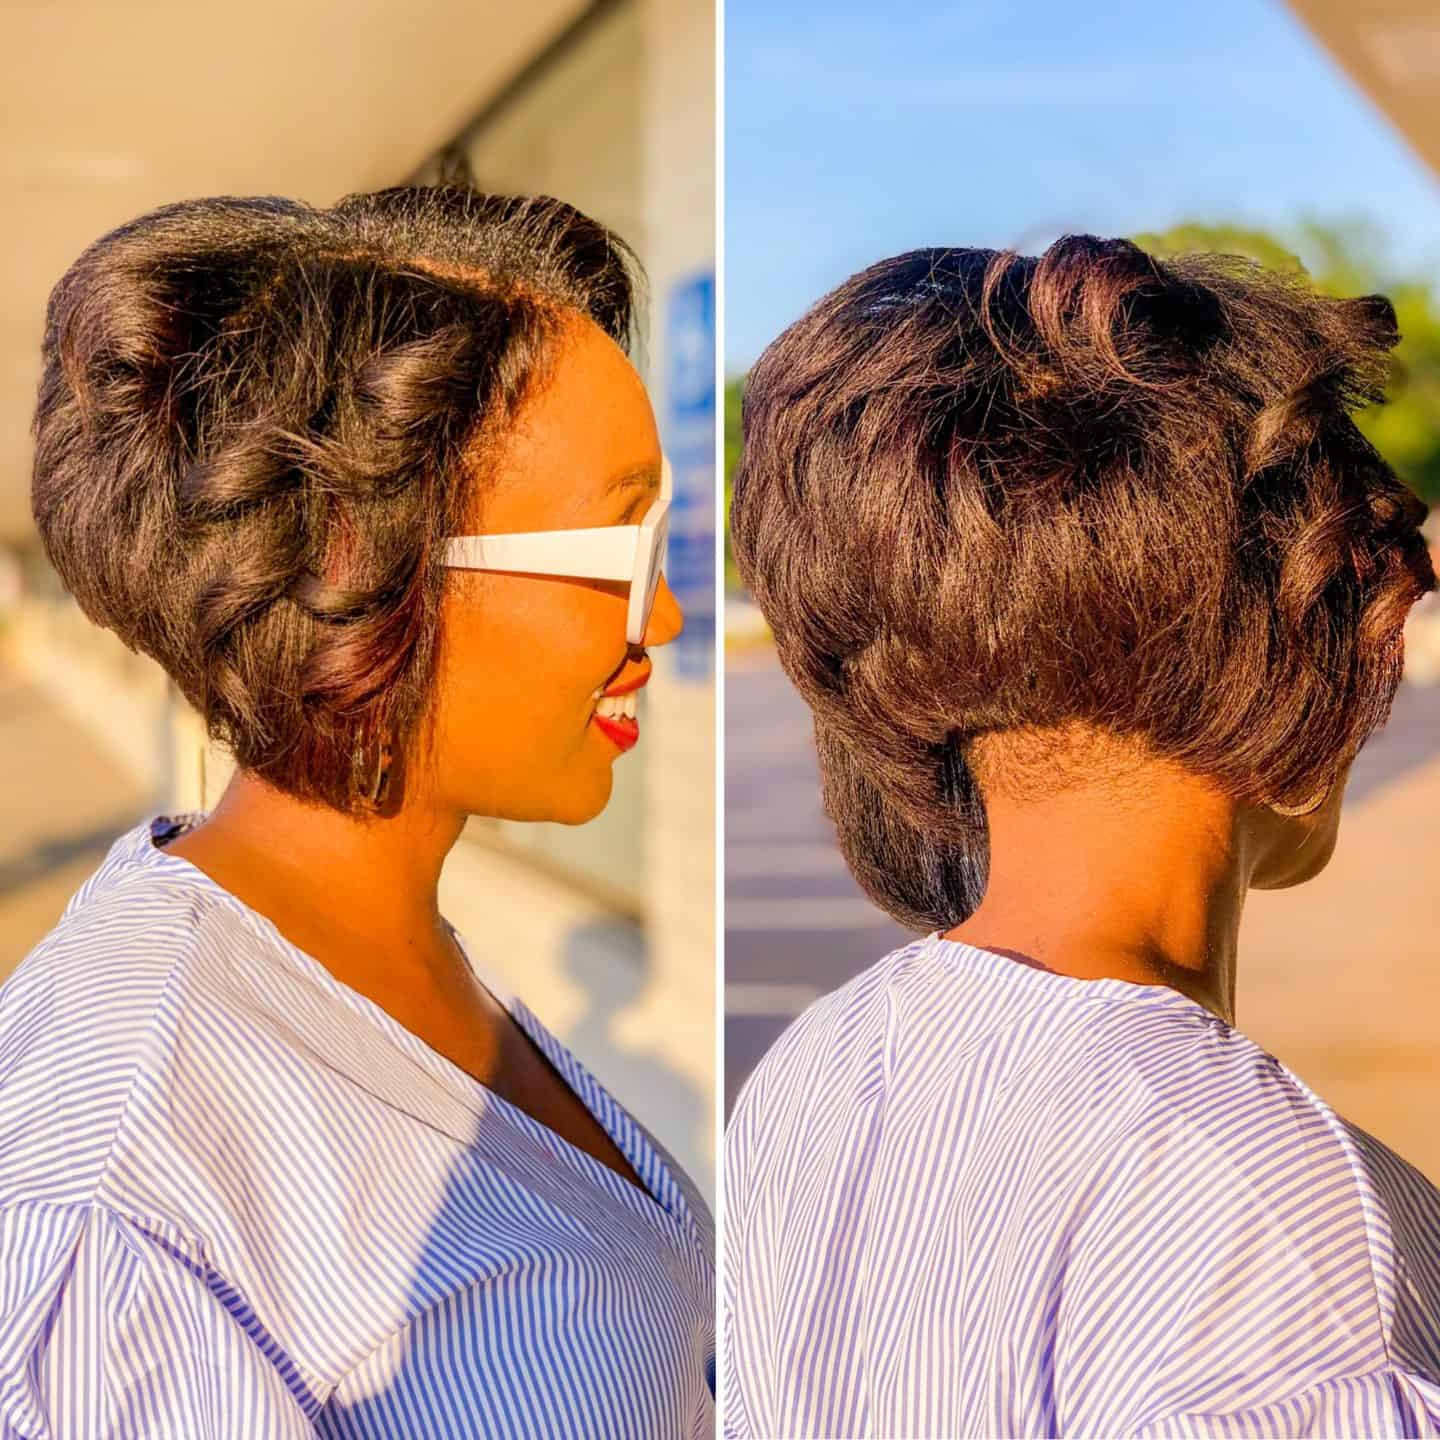 Shaunda Necole Summer Solstice Shorter Haircut For The Longest Day of The Year- Hair We Are VA Beach hair by Destiny